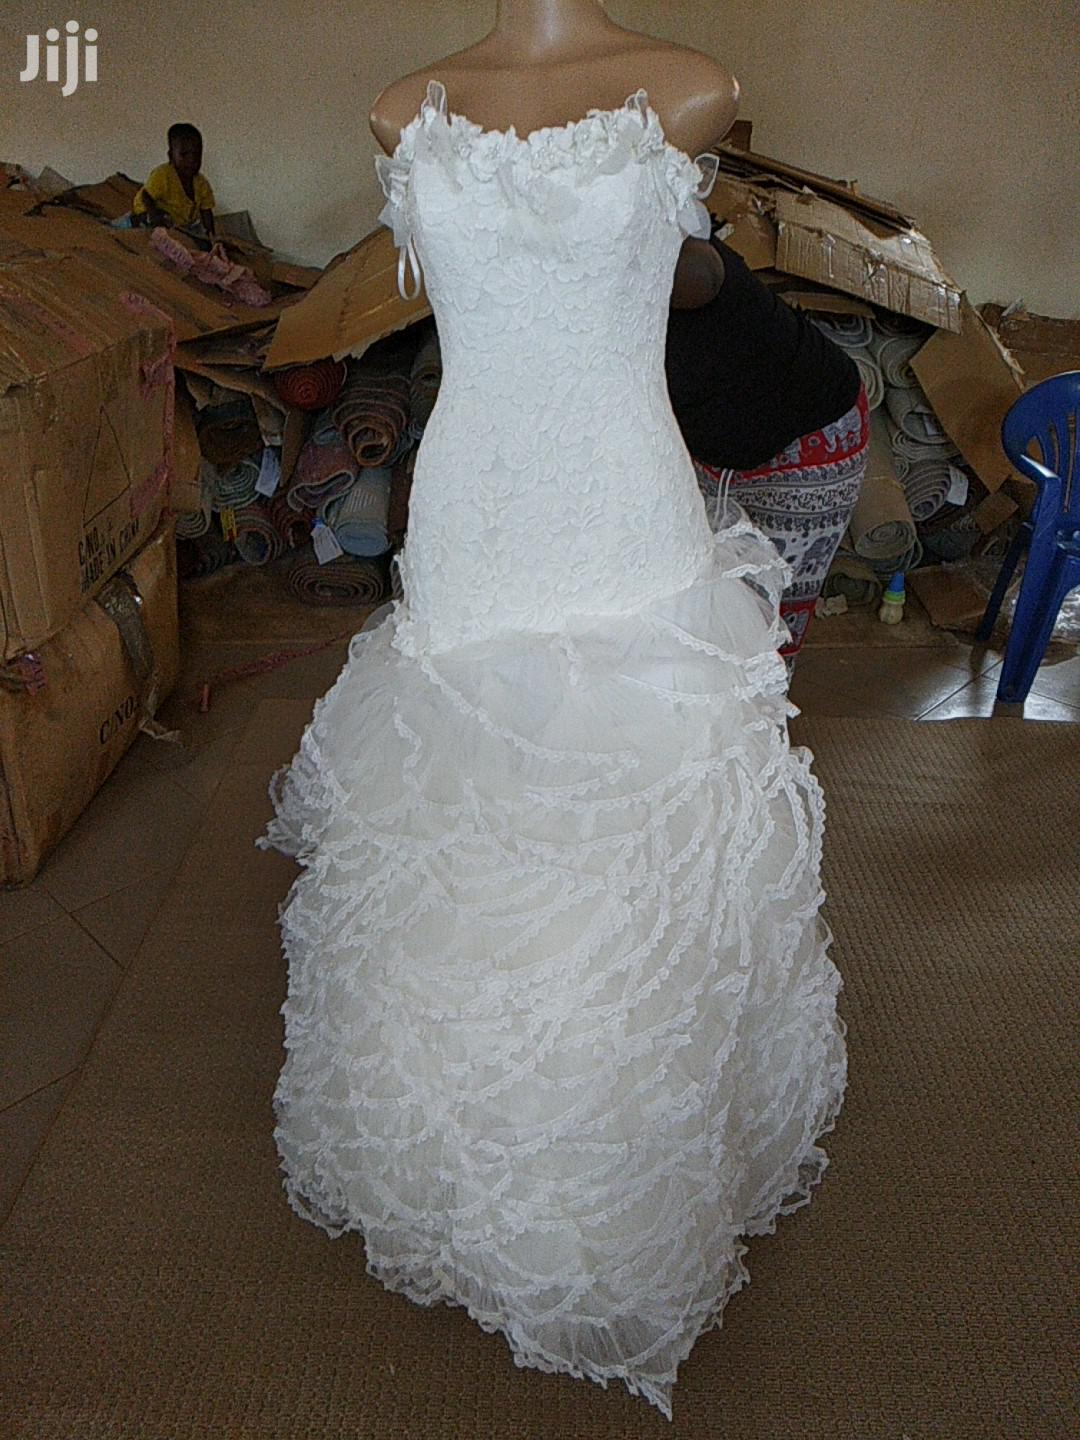 New Weeding Gown Abigail Size 12 | Wedding Wear & Accessories for sale in Kampala, Central Region, Uganda